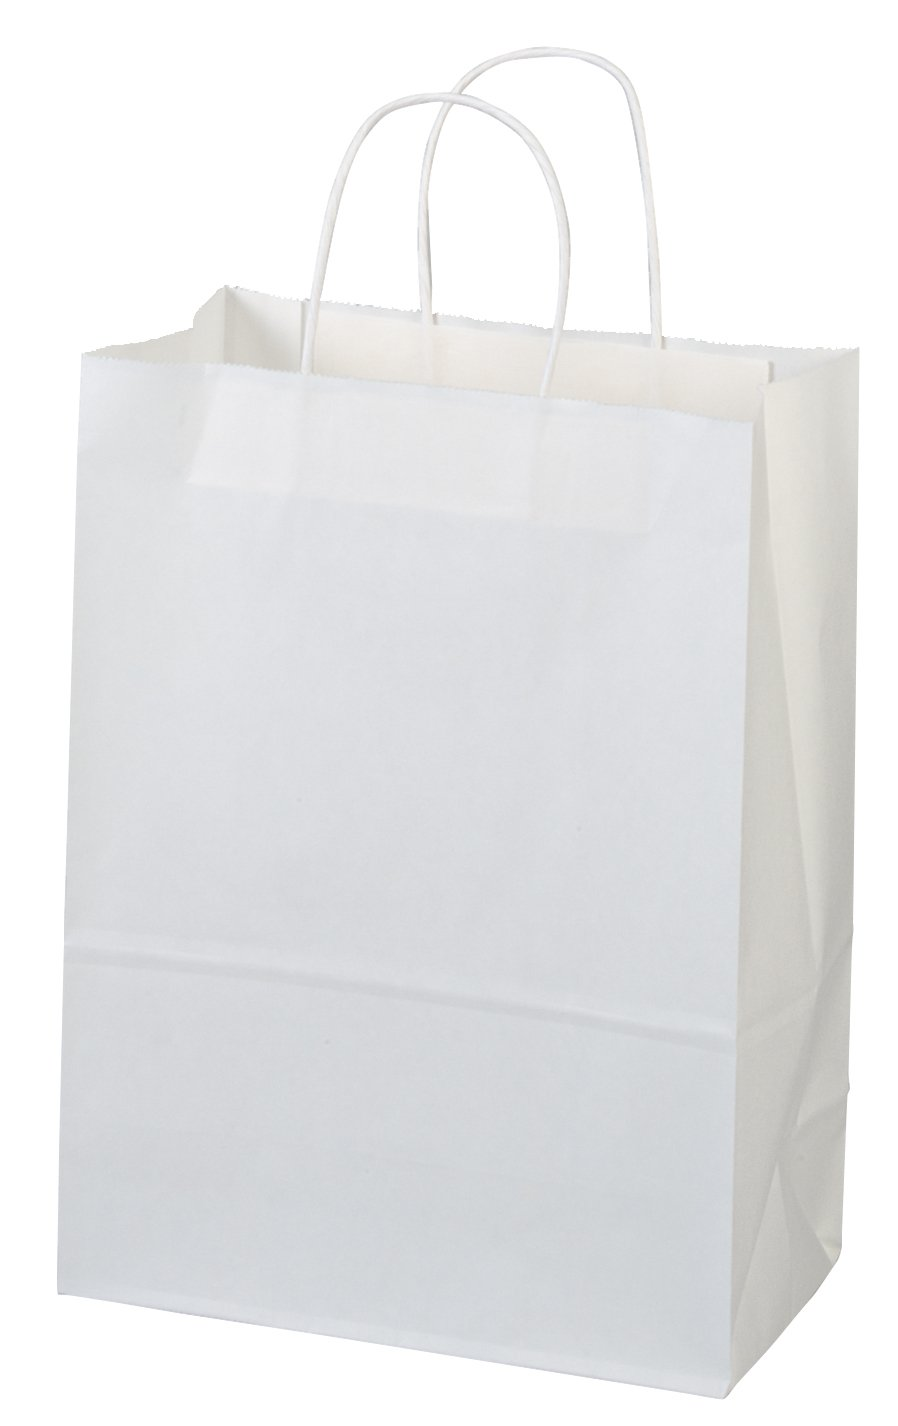 Flexicore Packaging 10''x5''x13'' - 50 Pcs - Bagsource White Kraft Paper Bags, Shopping, Mechandise, Party, Gift Bags